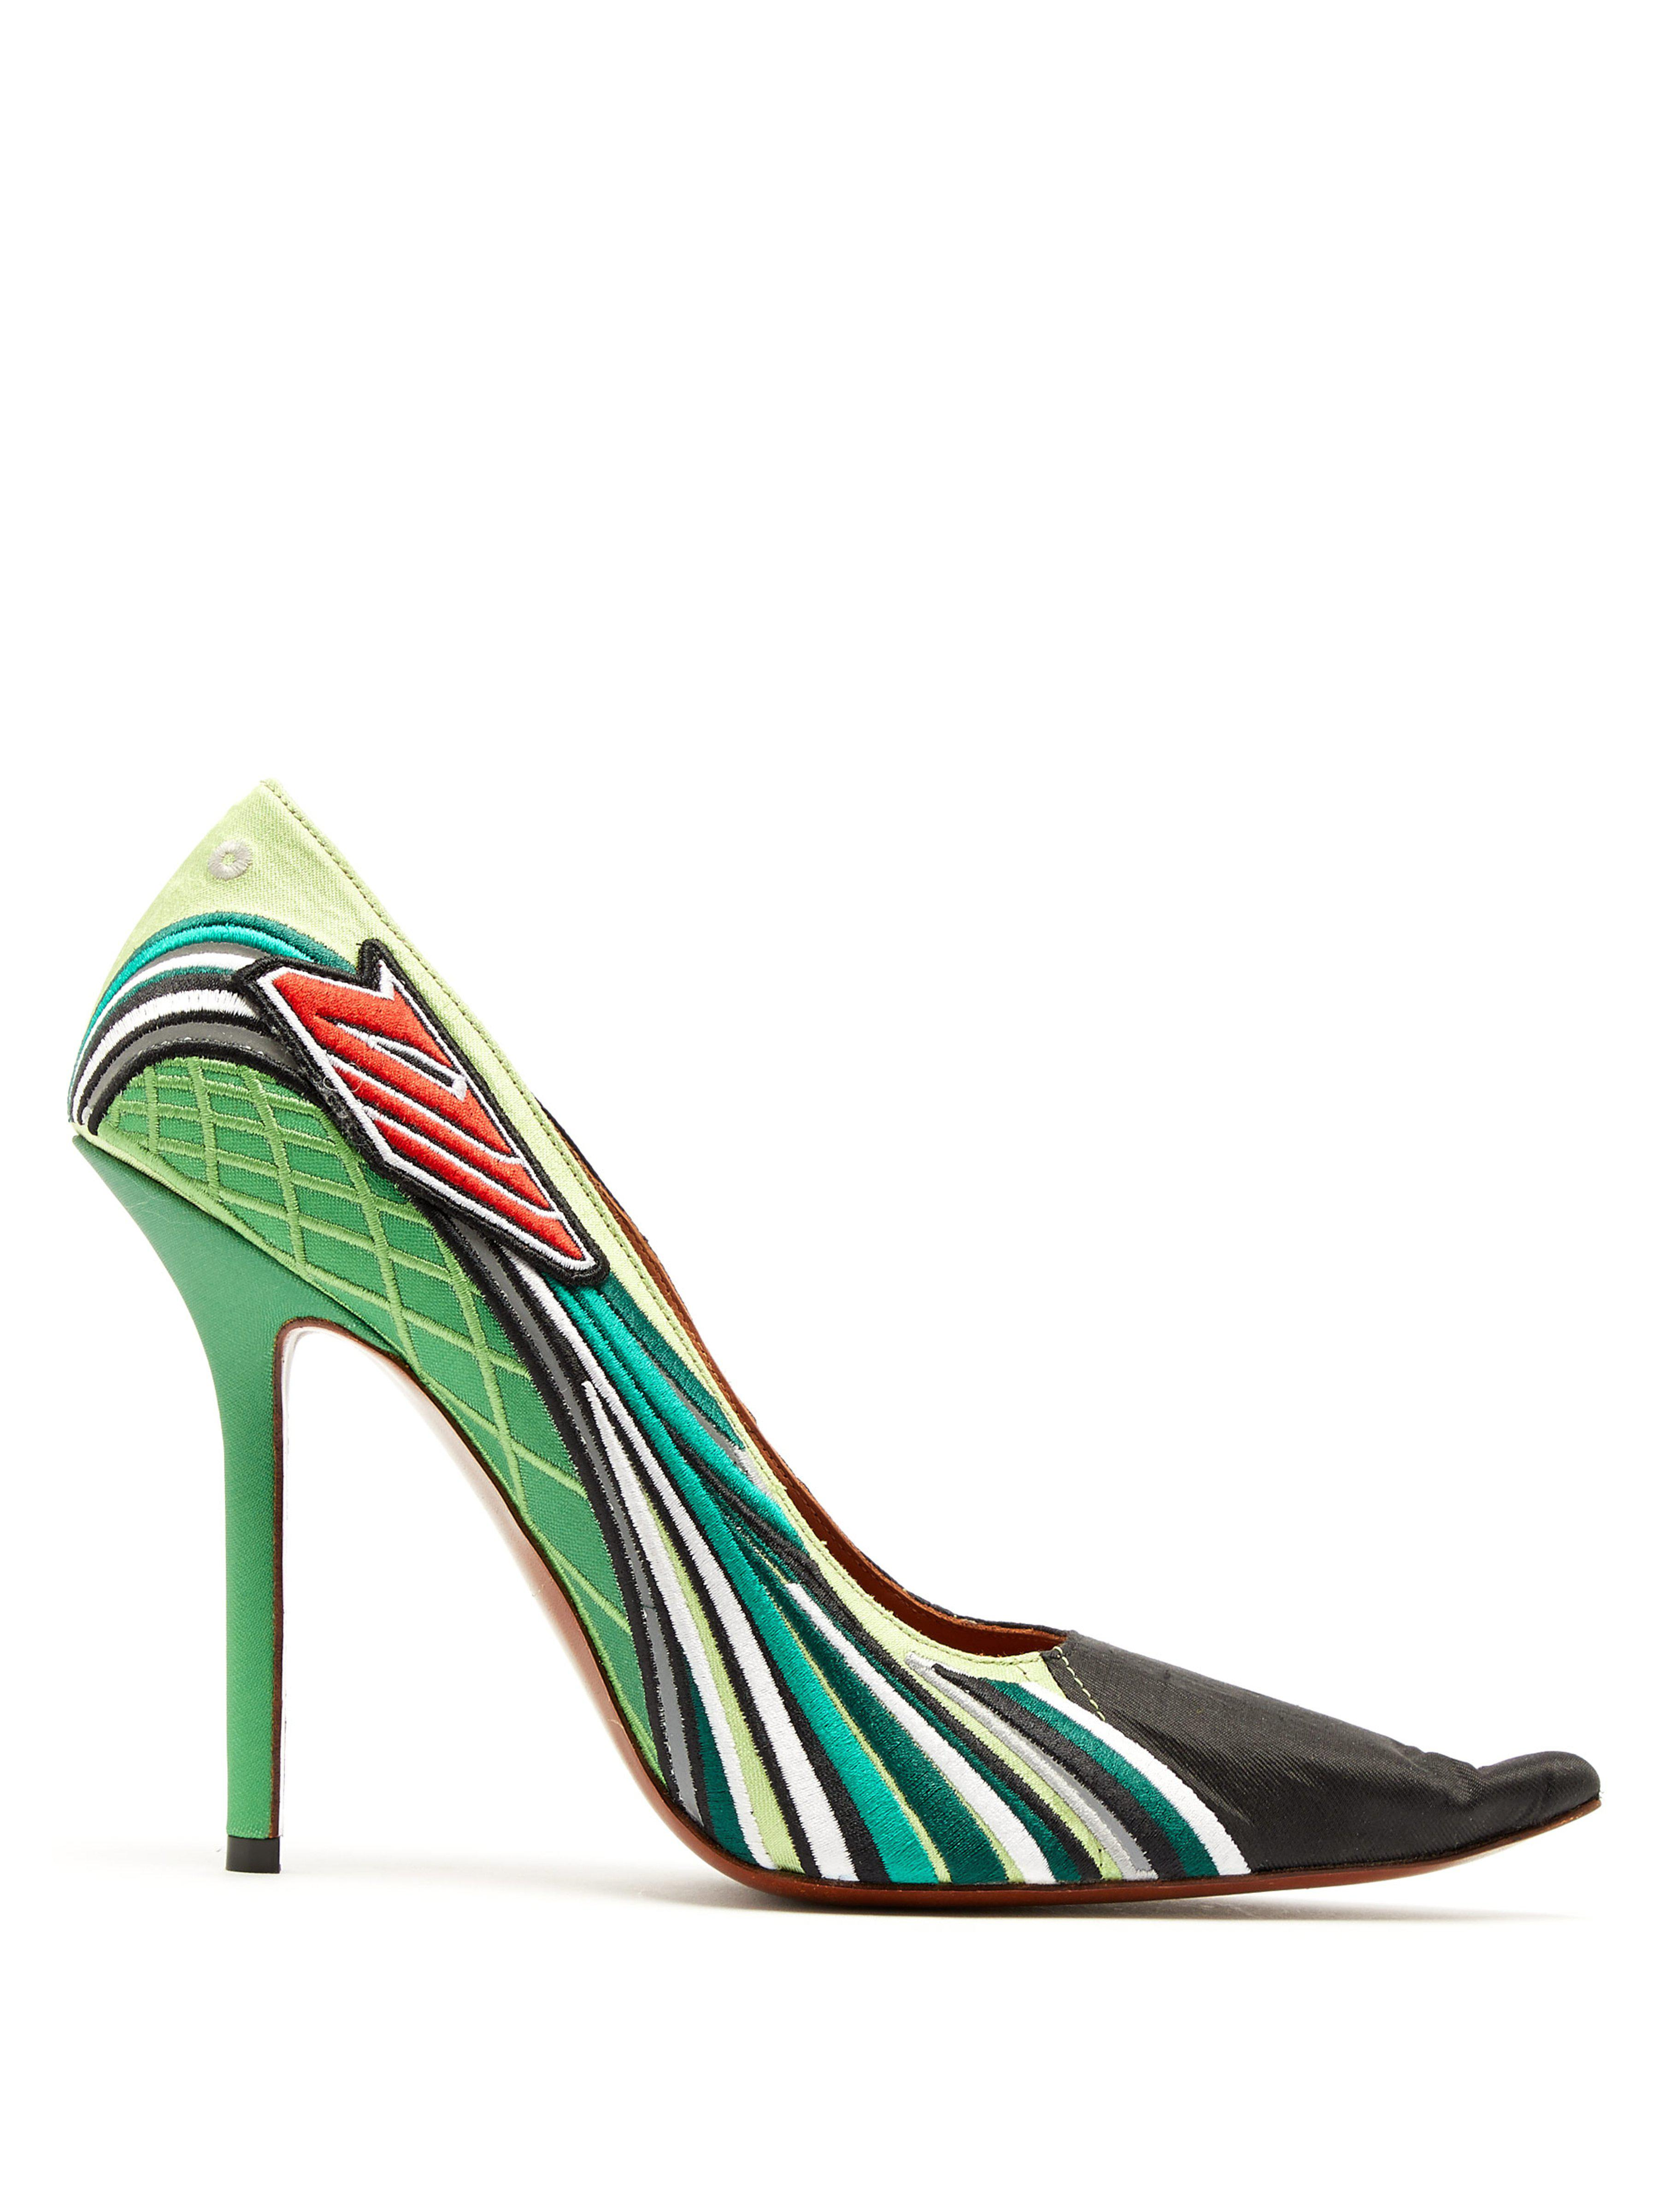 b5015586f364 Vetements. Women s Green Racer Embroidered Point Toe Court Shoes